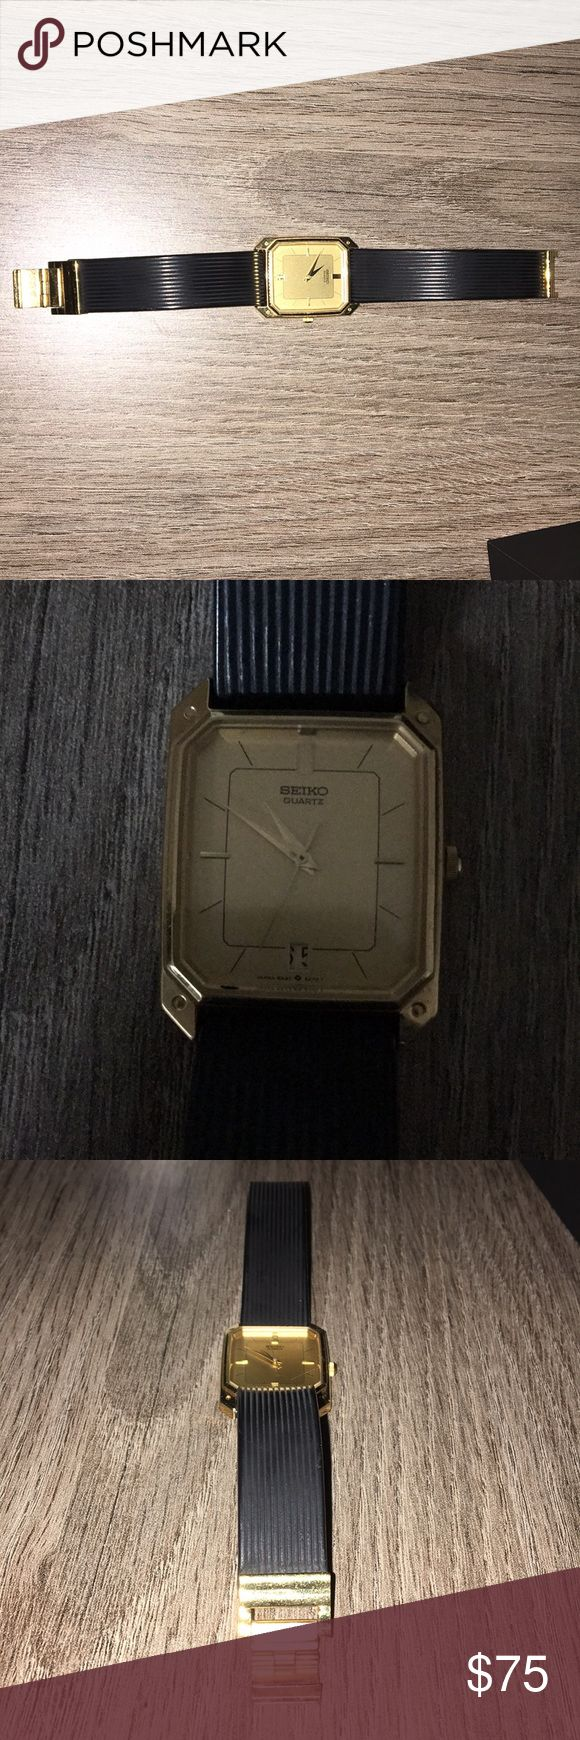 Seiko Watch: Gold & Black Band (VERY LOW PRICE) Seiko Gold & Black colored watch. Durable watch with durable band. It is no longer on the market and is limited edition. In great condition. Shines like new and wasn't worn very often. AMAZING DEAL. Seiko Accessories Watches